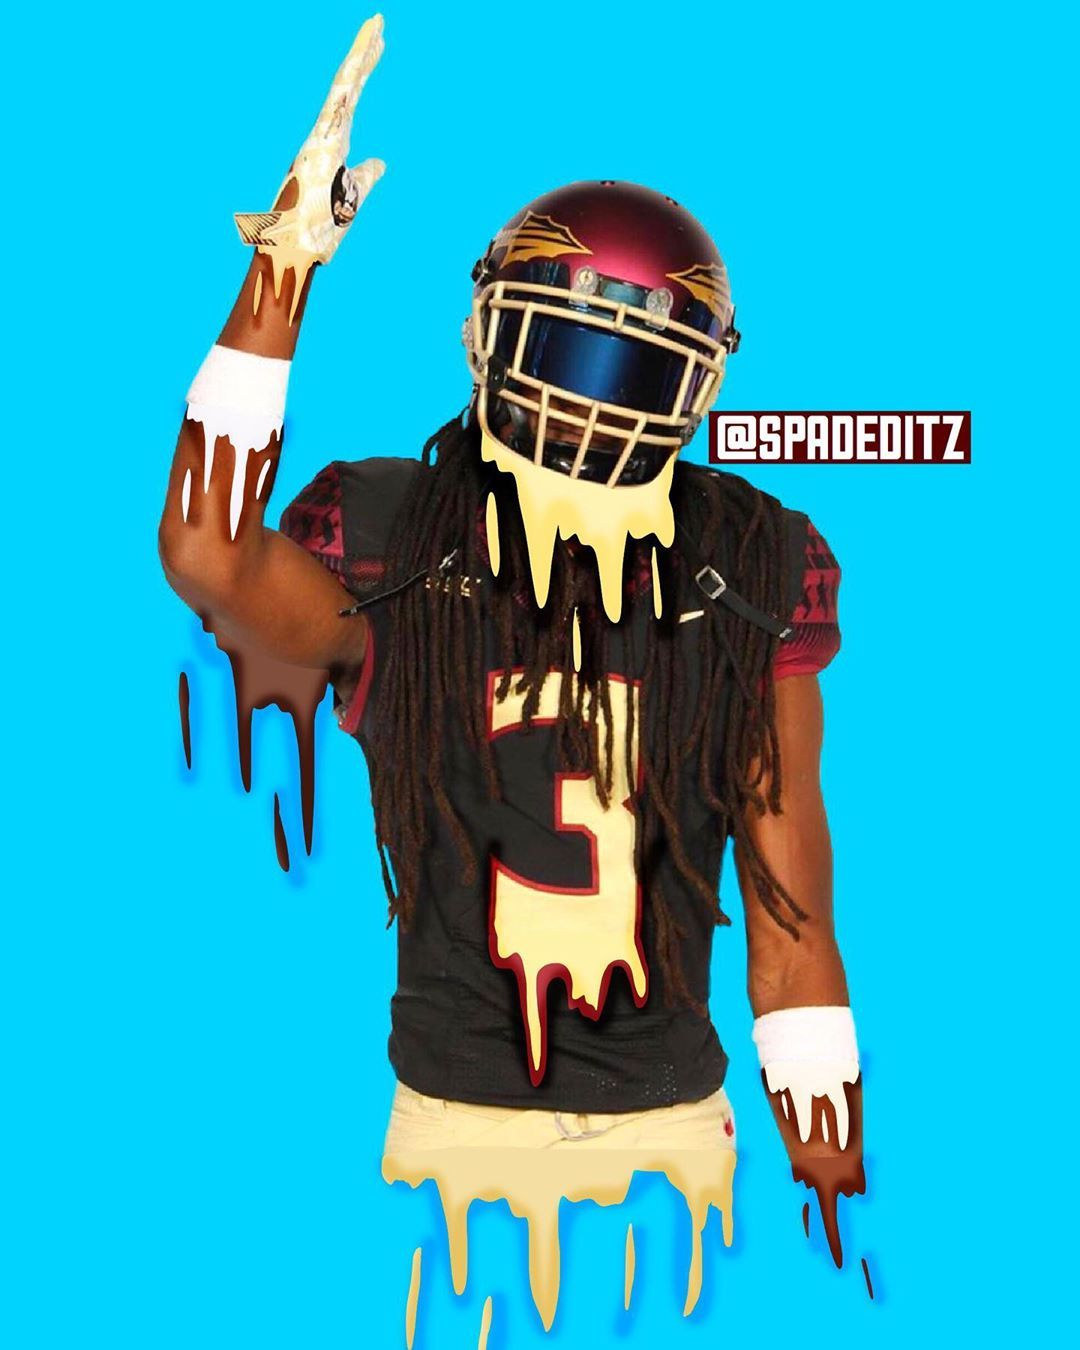 D R I P P I N Limited Edition Edits Sports Sportsedits Cooledits Nfl Football Nfl Football Wallpaper Traveling By Yourself Football Wallpaper